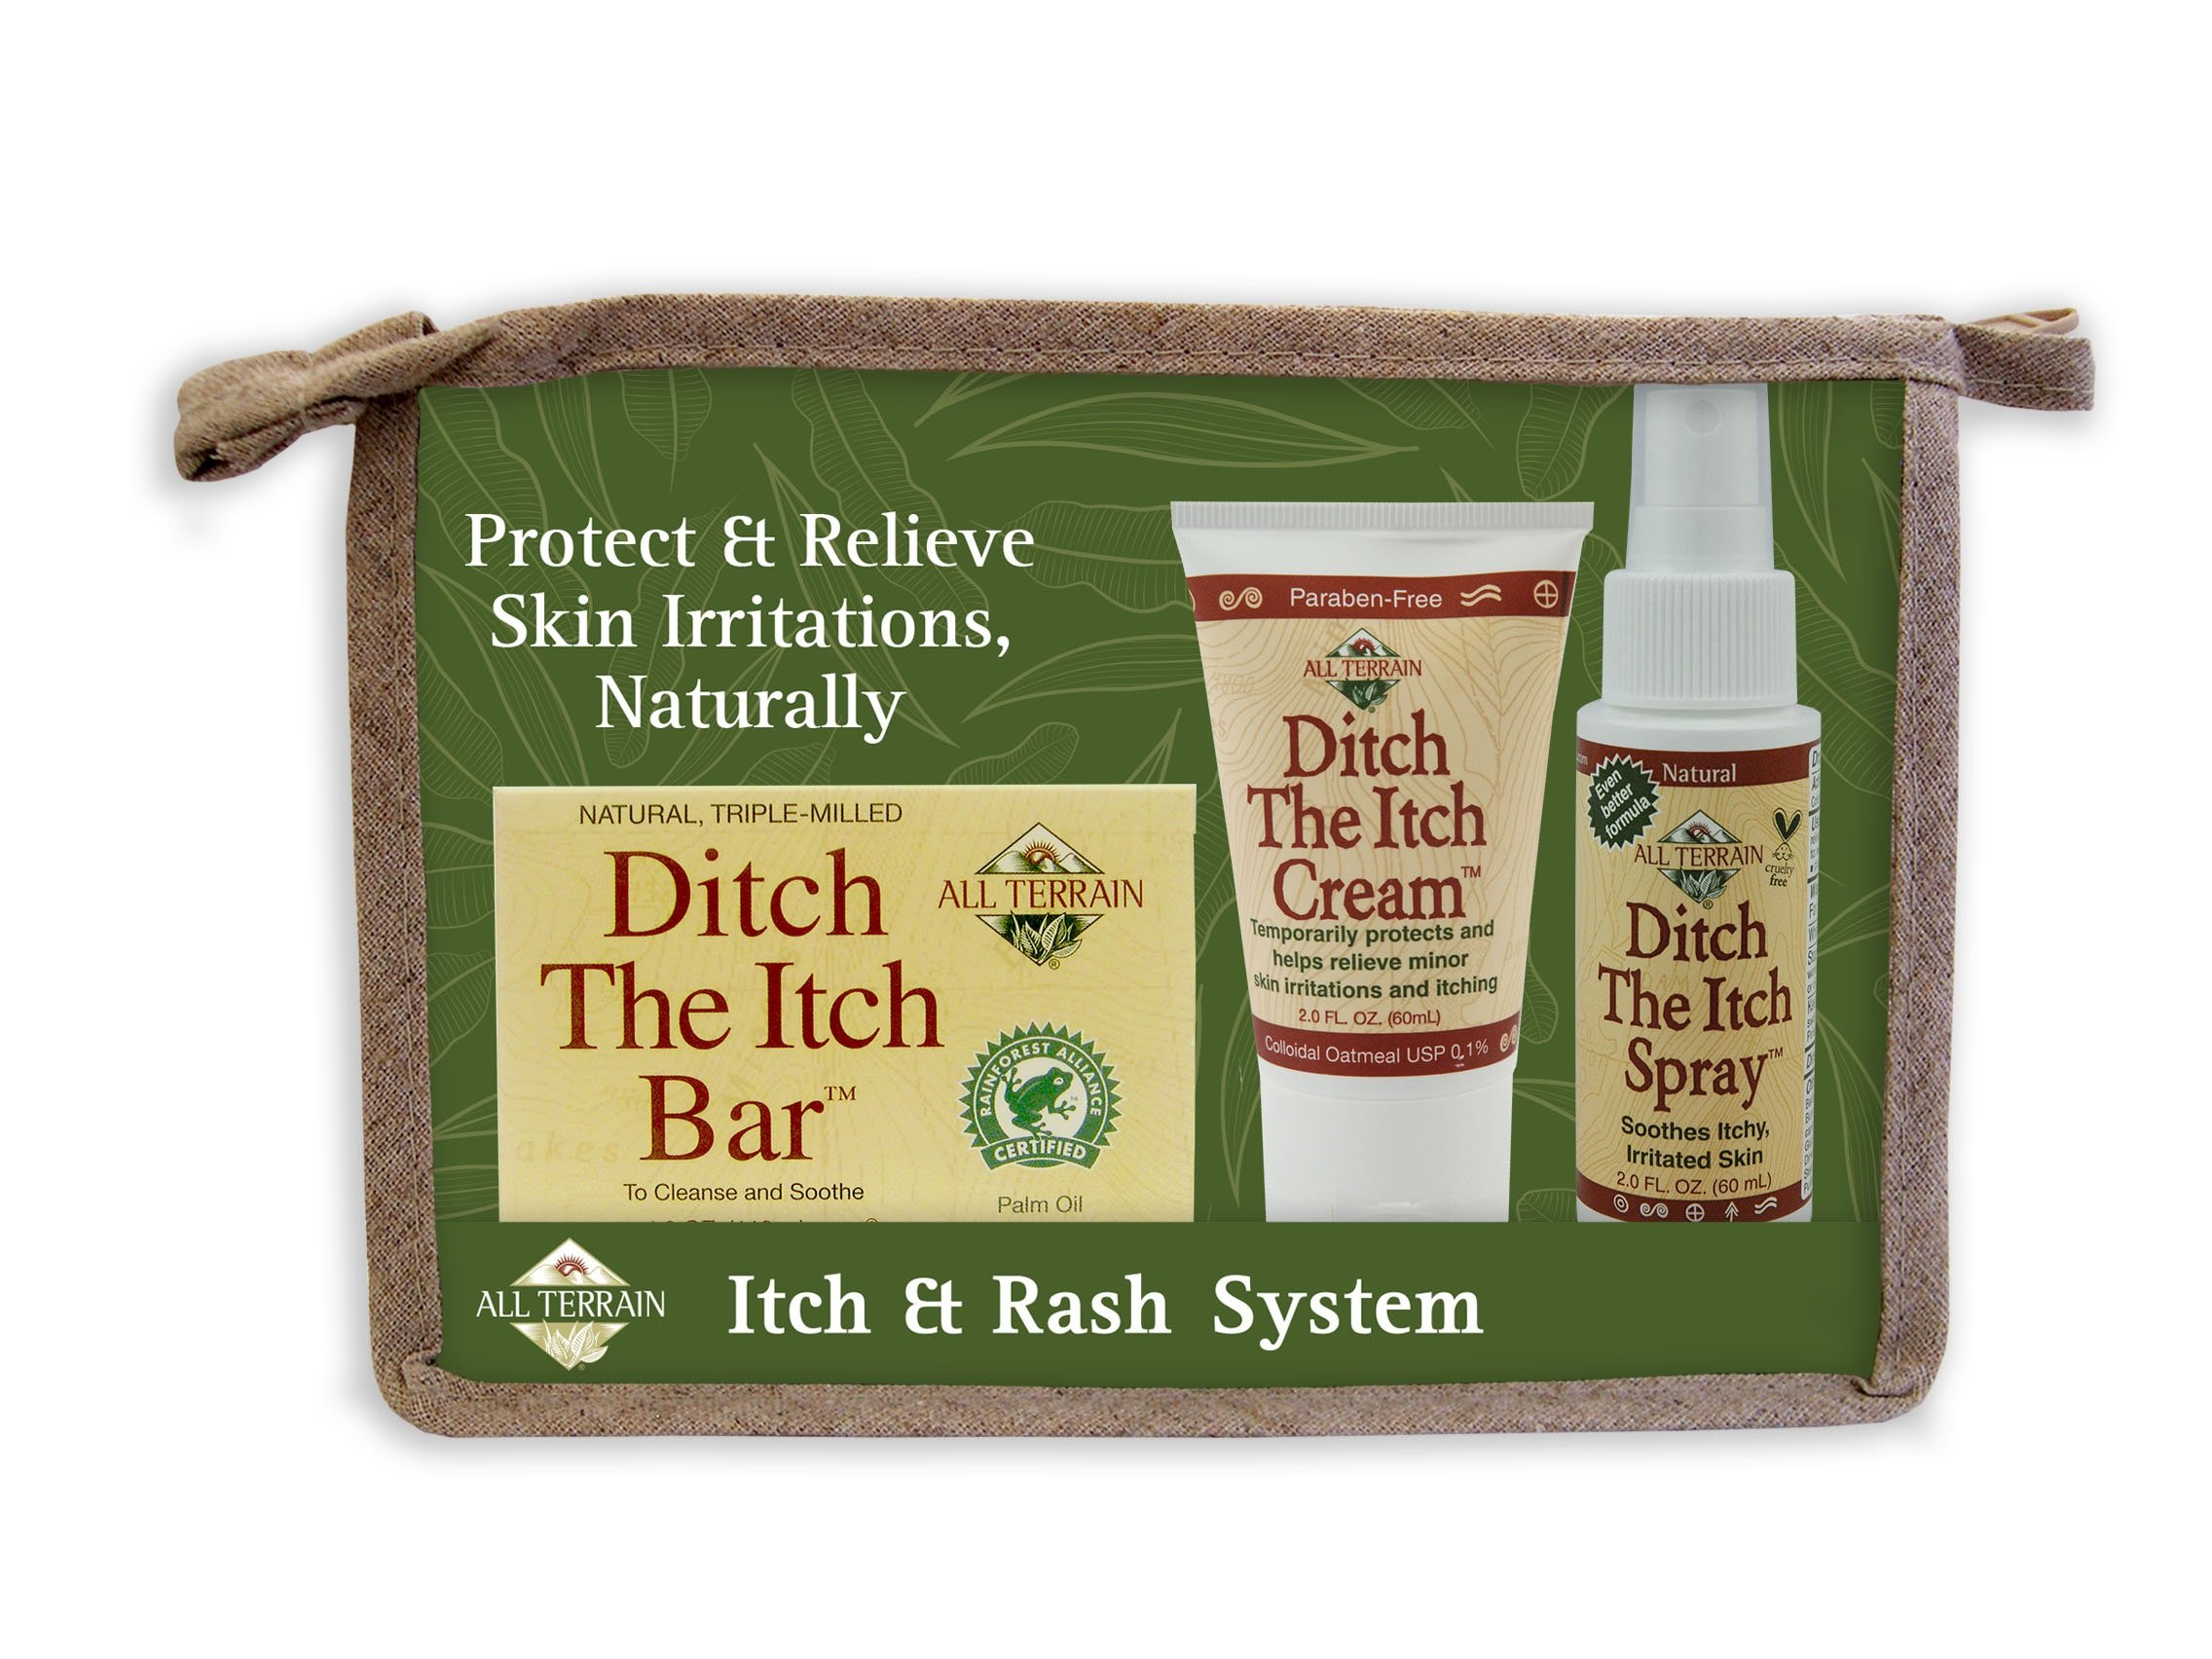 All Terrain Itch & Rash System, 3 count